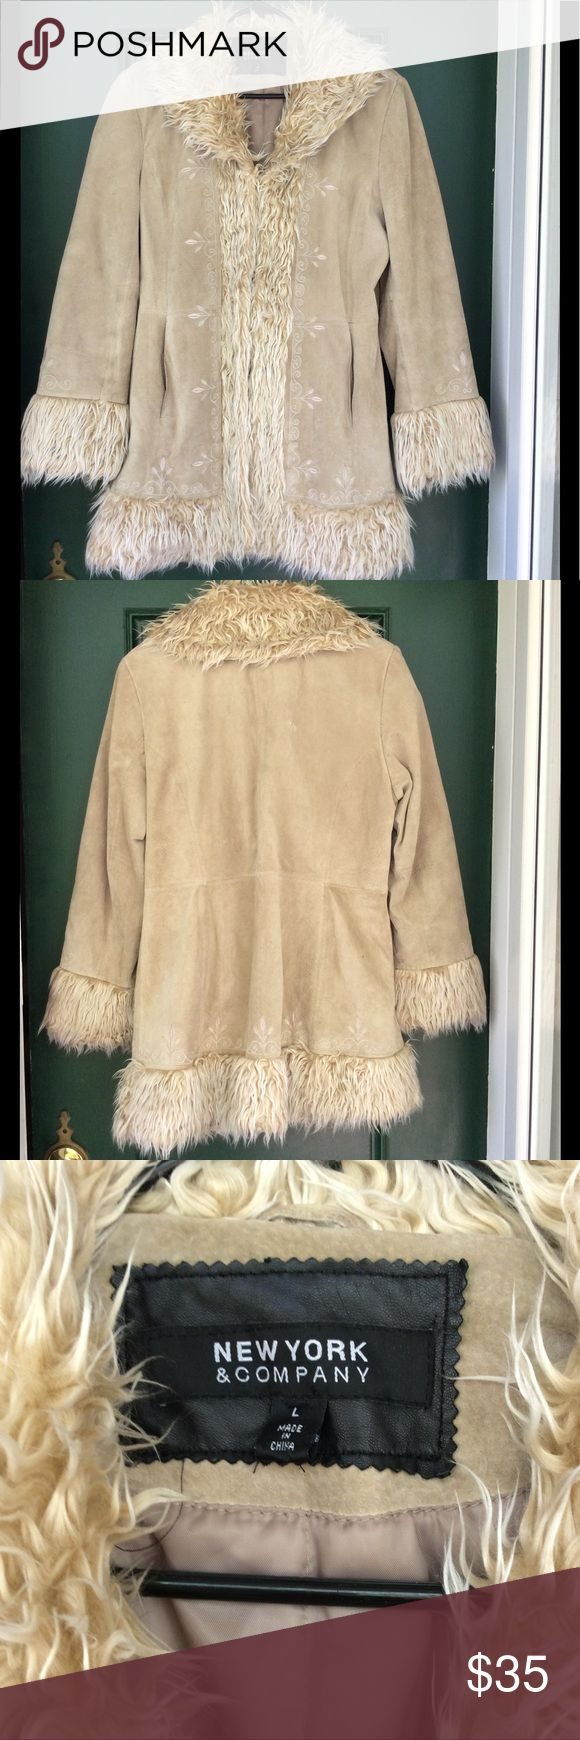 Cream Suede and Faux Fur Jacket This jacket has beautiful embroidery. It has been loved and worn. Structurally it is perfect there are no holes and the pockets are in great condition. Please note the last three images where there is some discoloration and two small stains. The first is a small discolor below the back collar, second is on the back bottom a small smudge and last inside the right bottom is a stain. I am pricing this accordingly. I held onto it in the hopes I would one day fit…